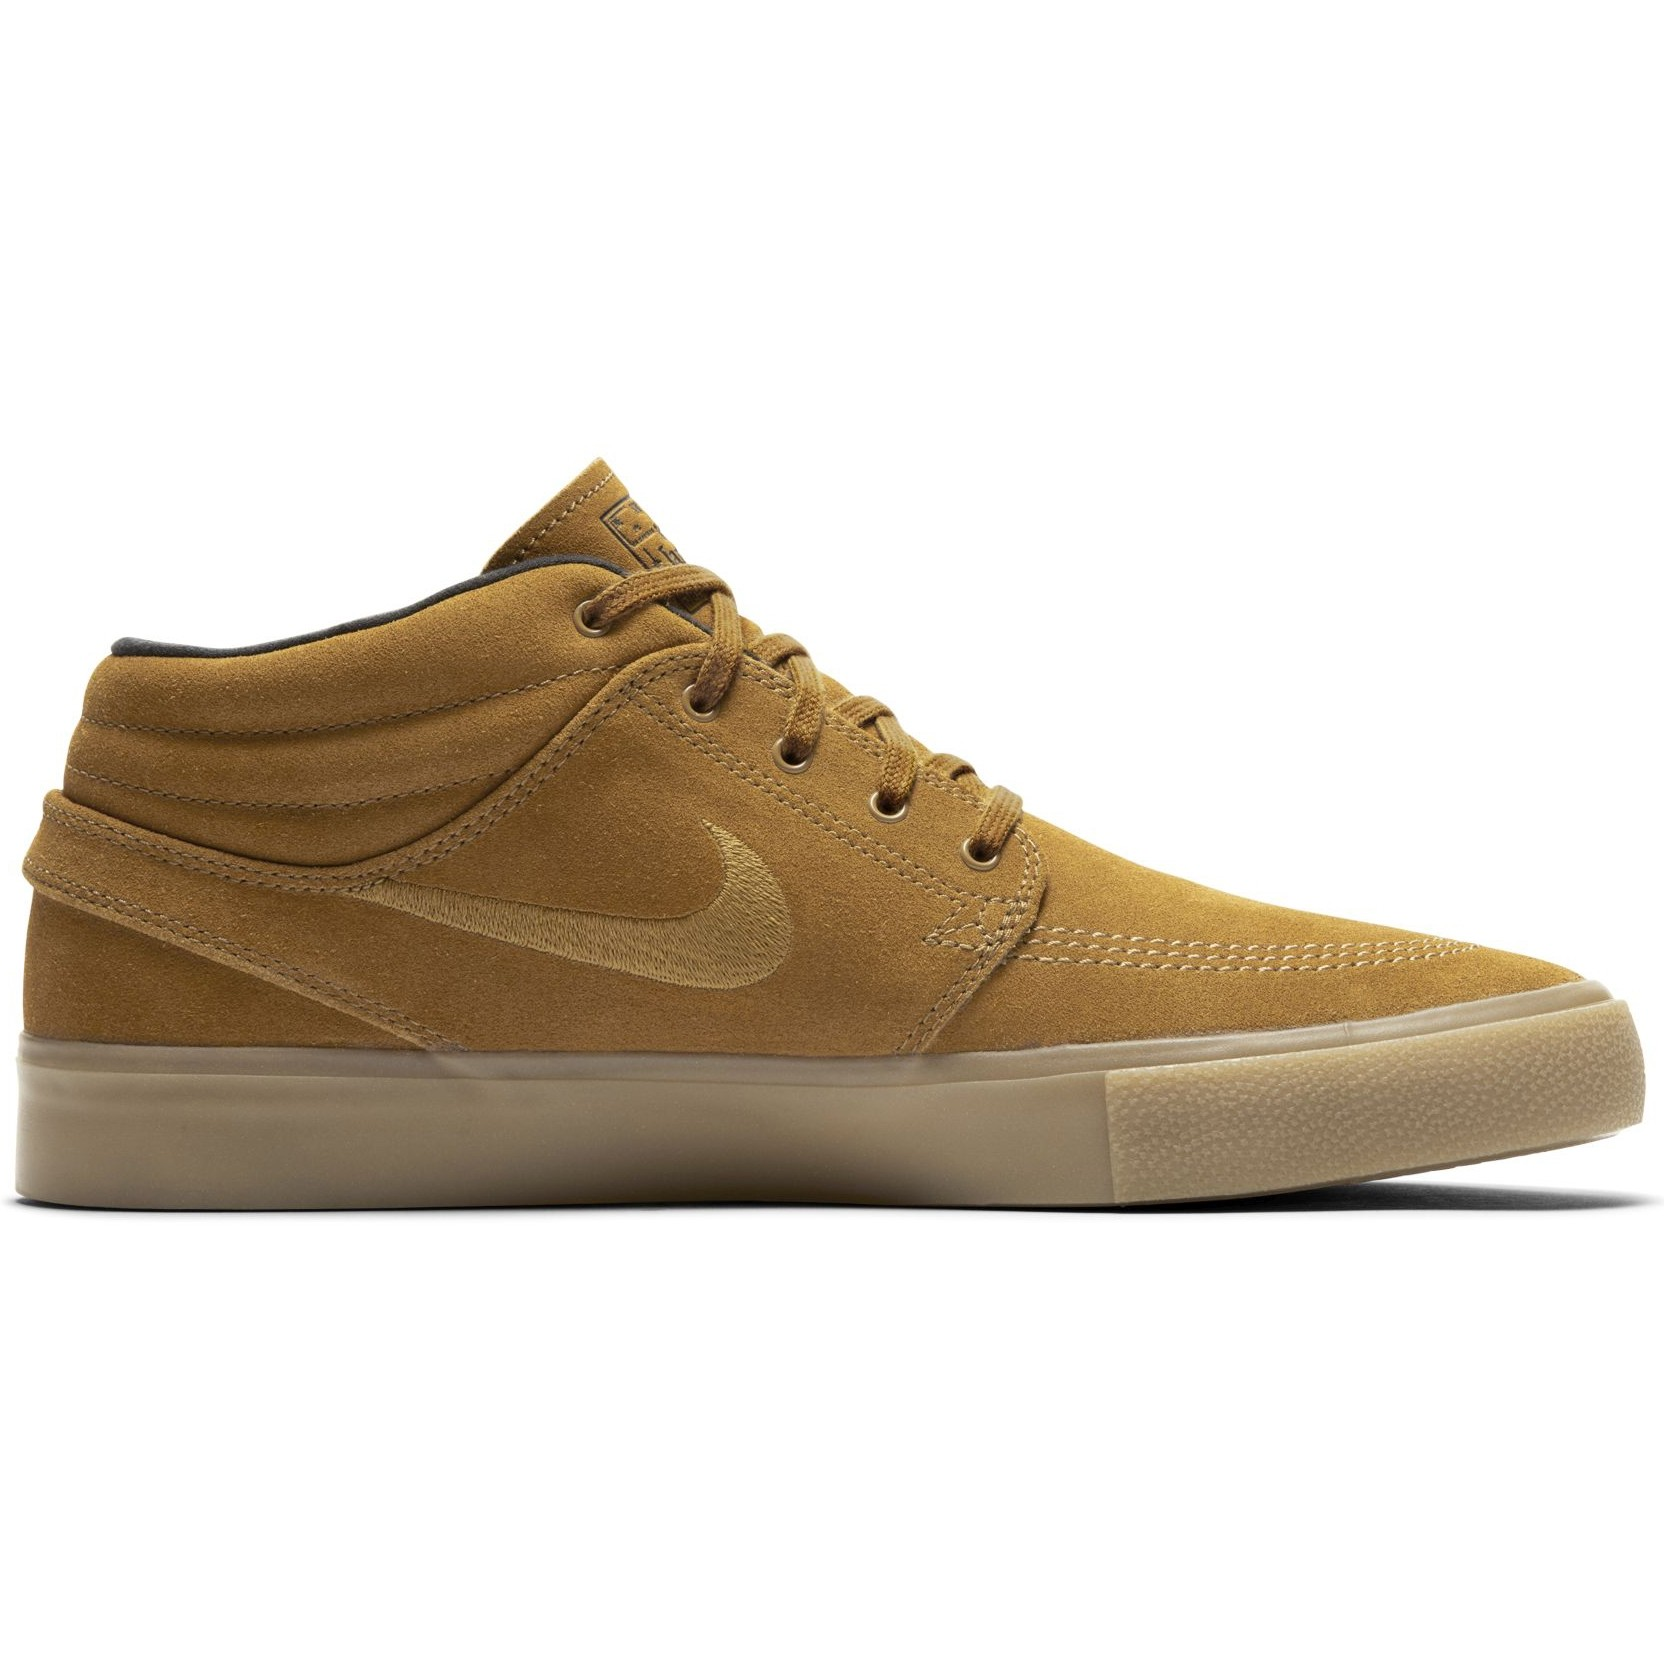 Nike SB Zoom Stefan Janoski Mid RM Wheat Light Brown - Laisvalaikio batai